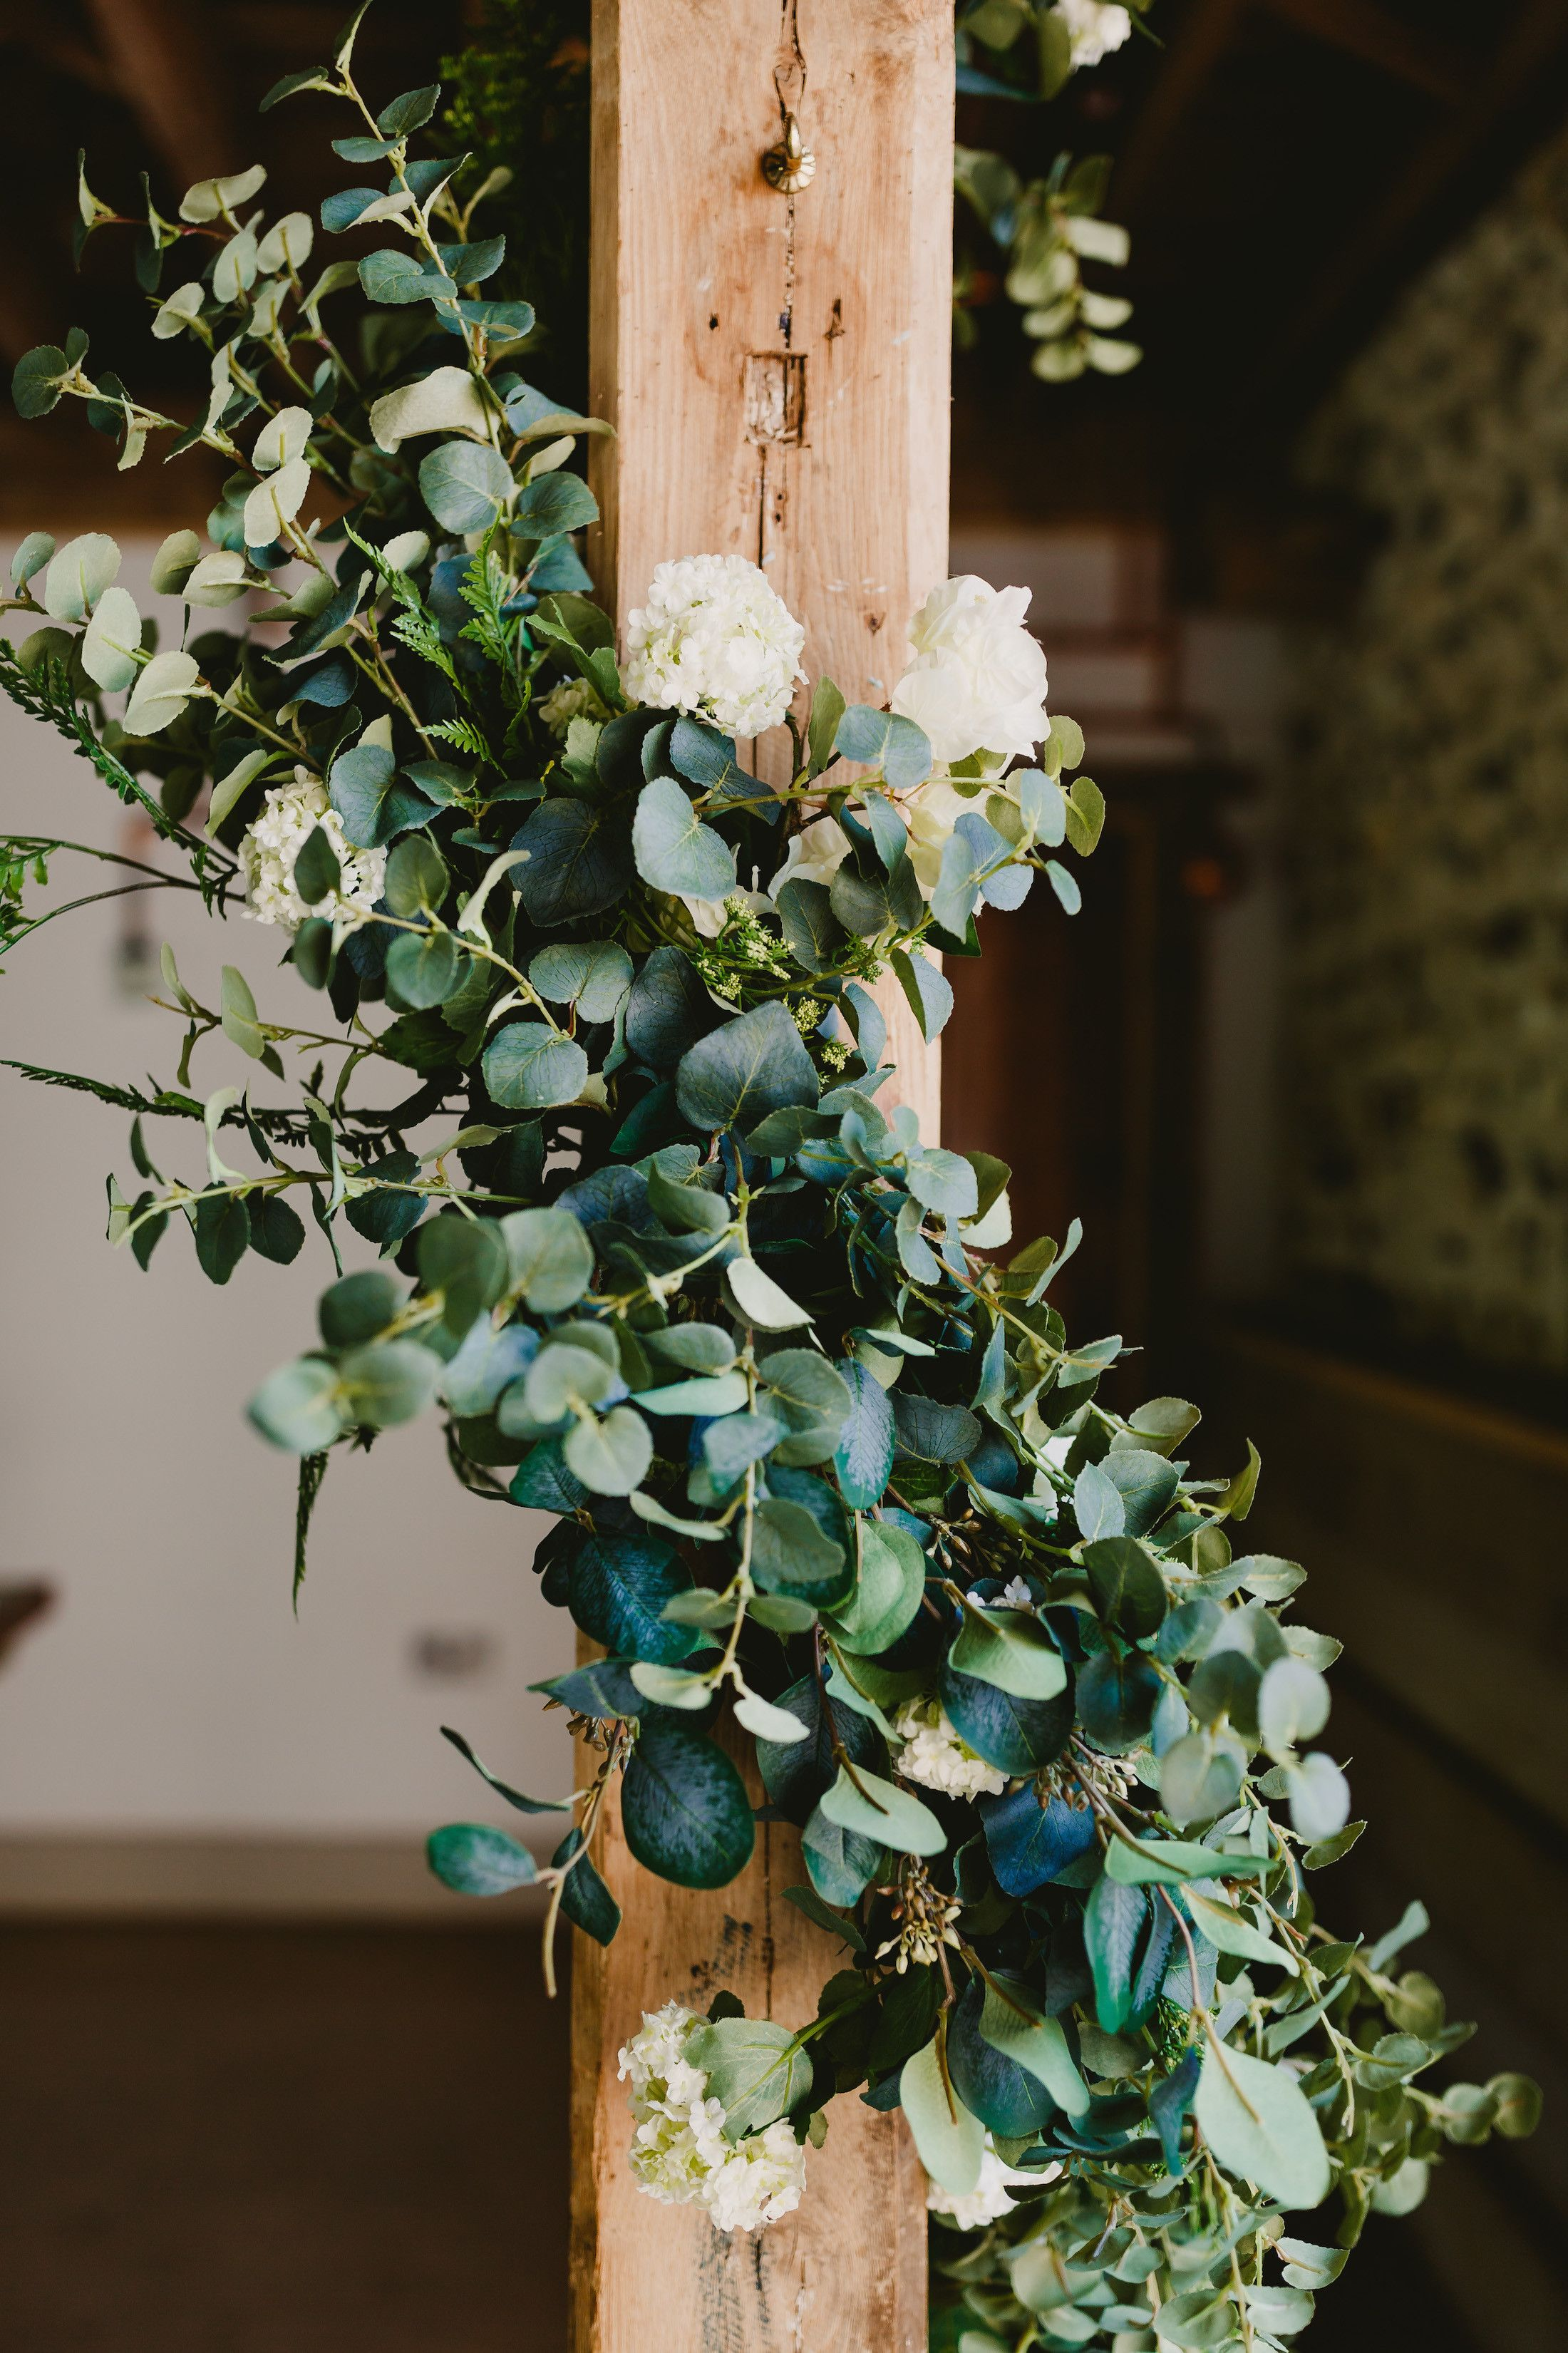 Faux Greenery Wrapped Around A Beam For A Barn Wedding Hire These